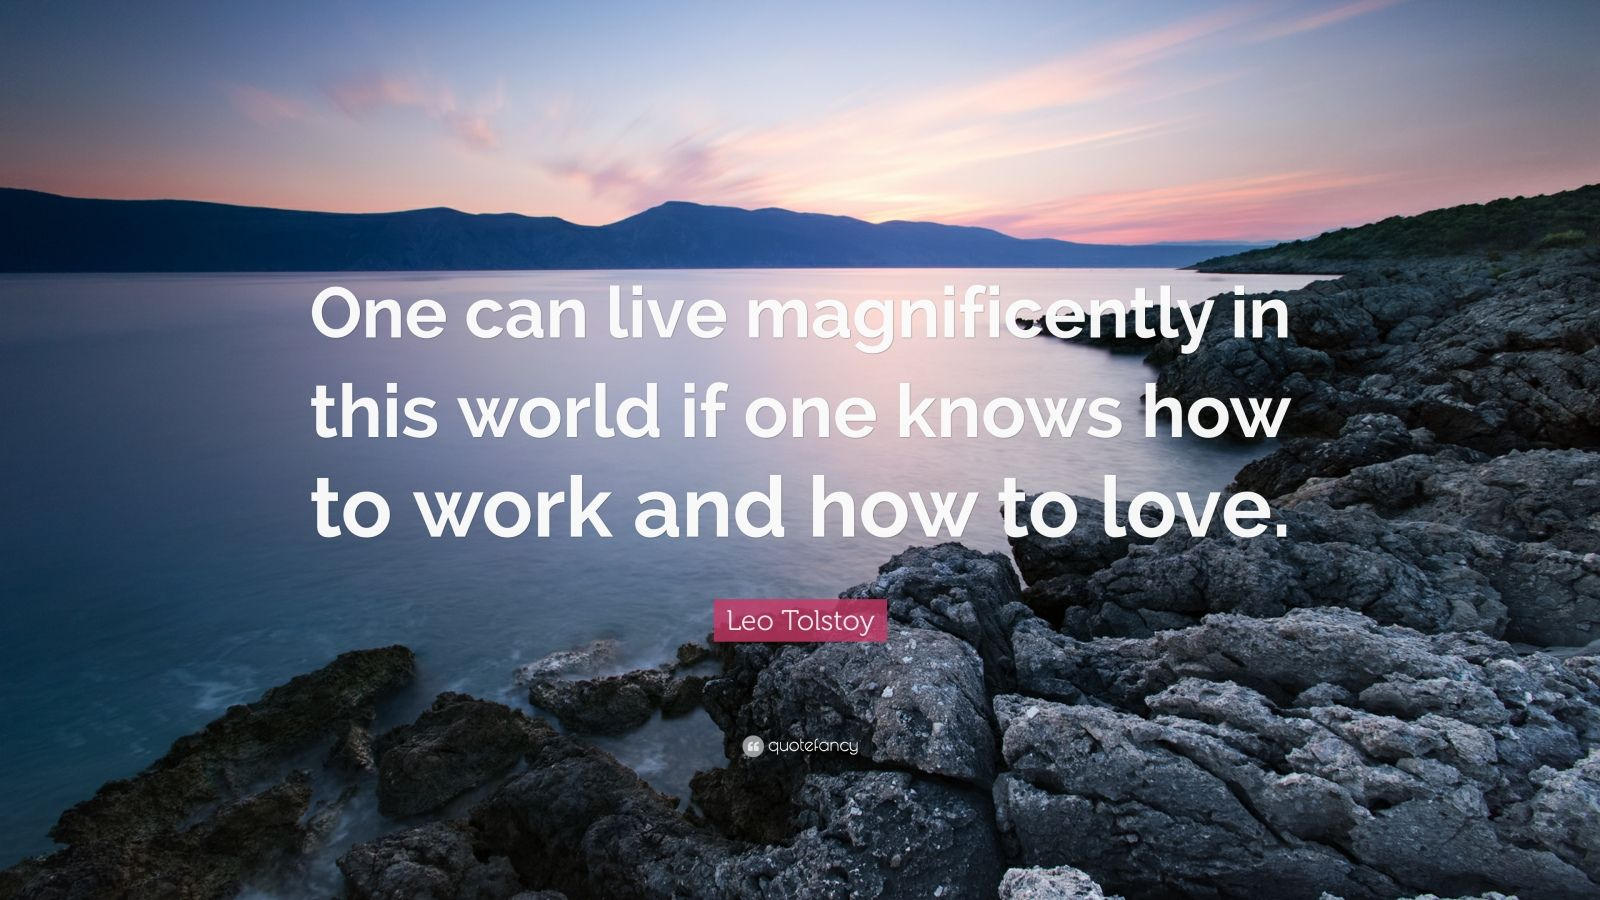 """Leo Tolstoy Quote: """"One can live magnificently in this world if one knows how to work and how to love."""""""